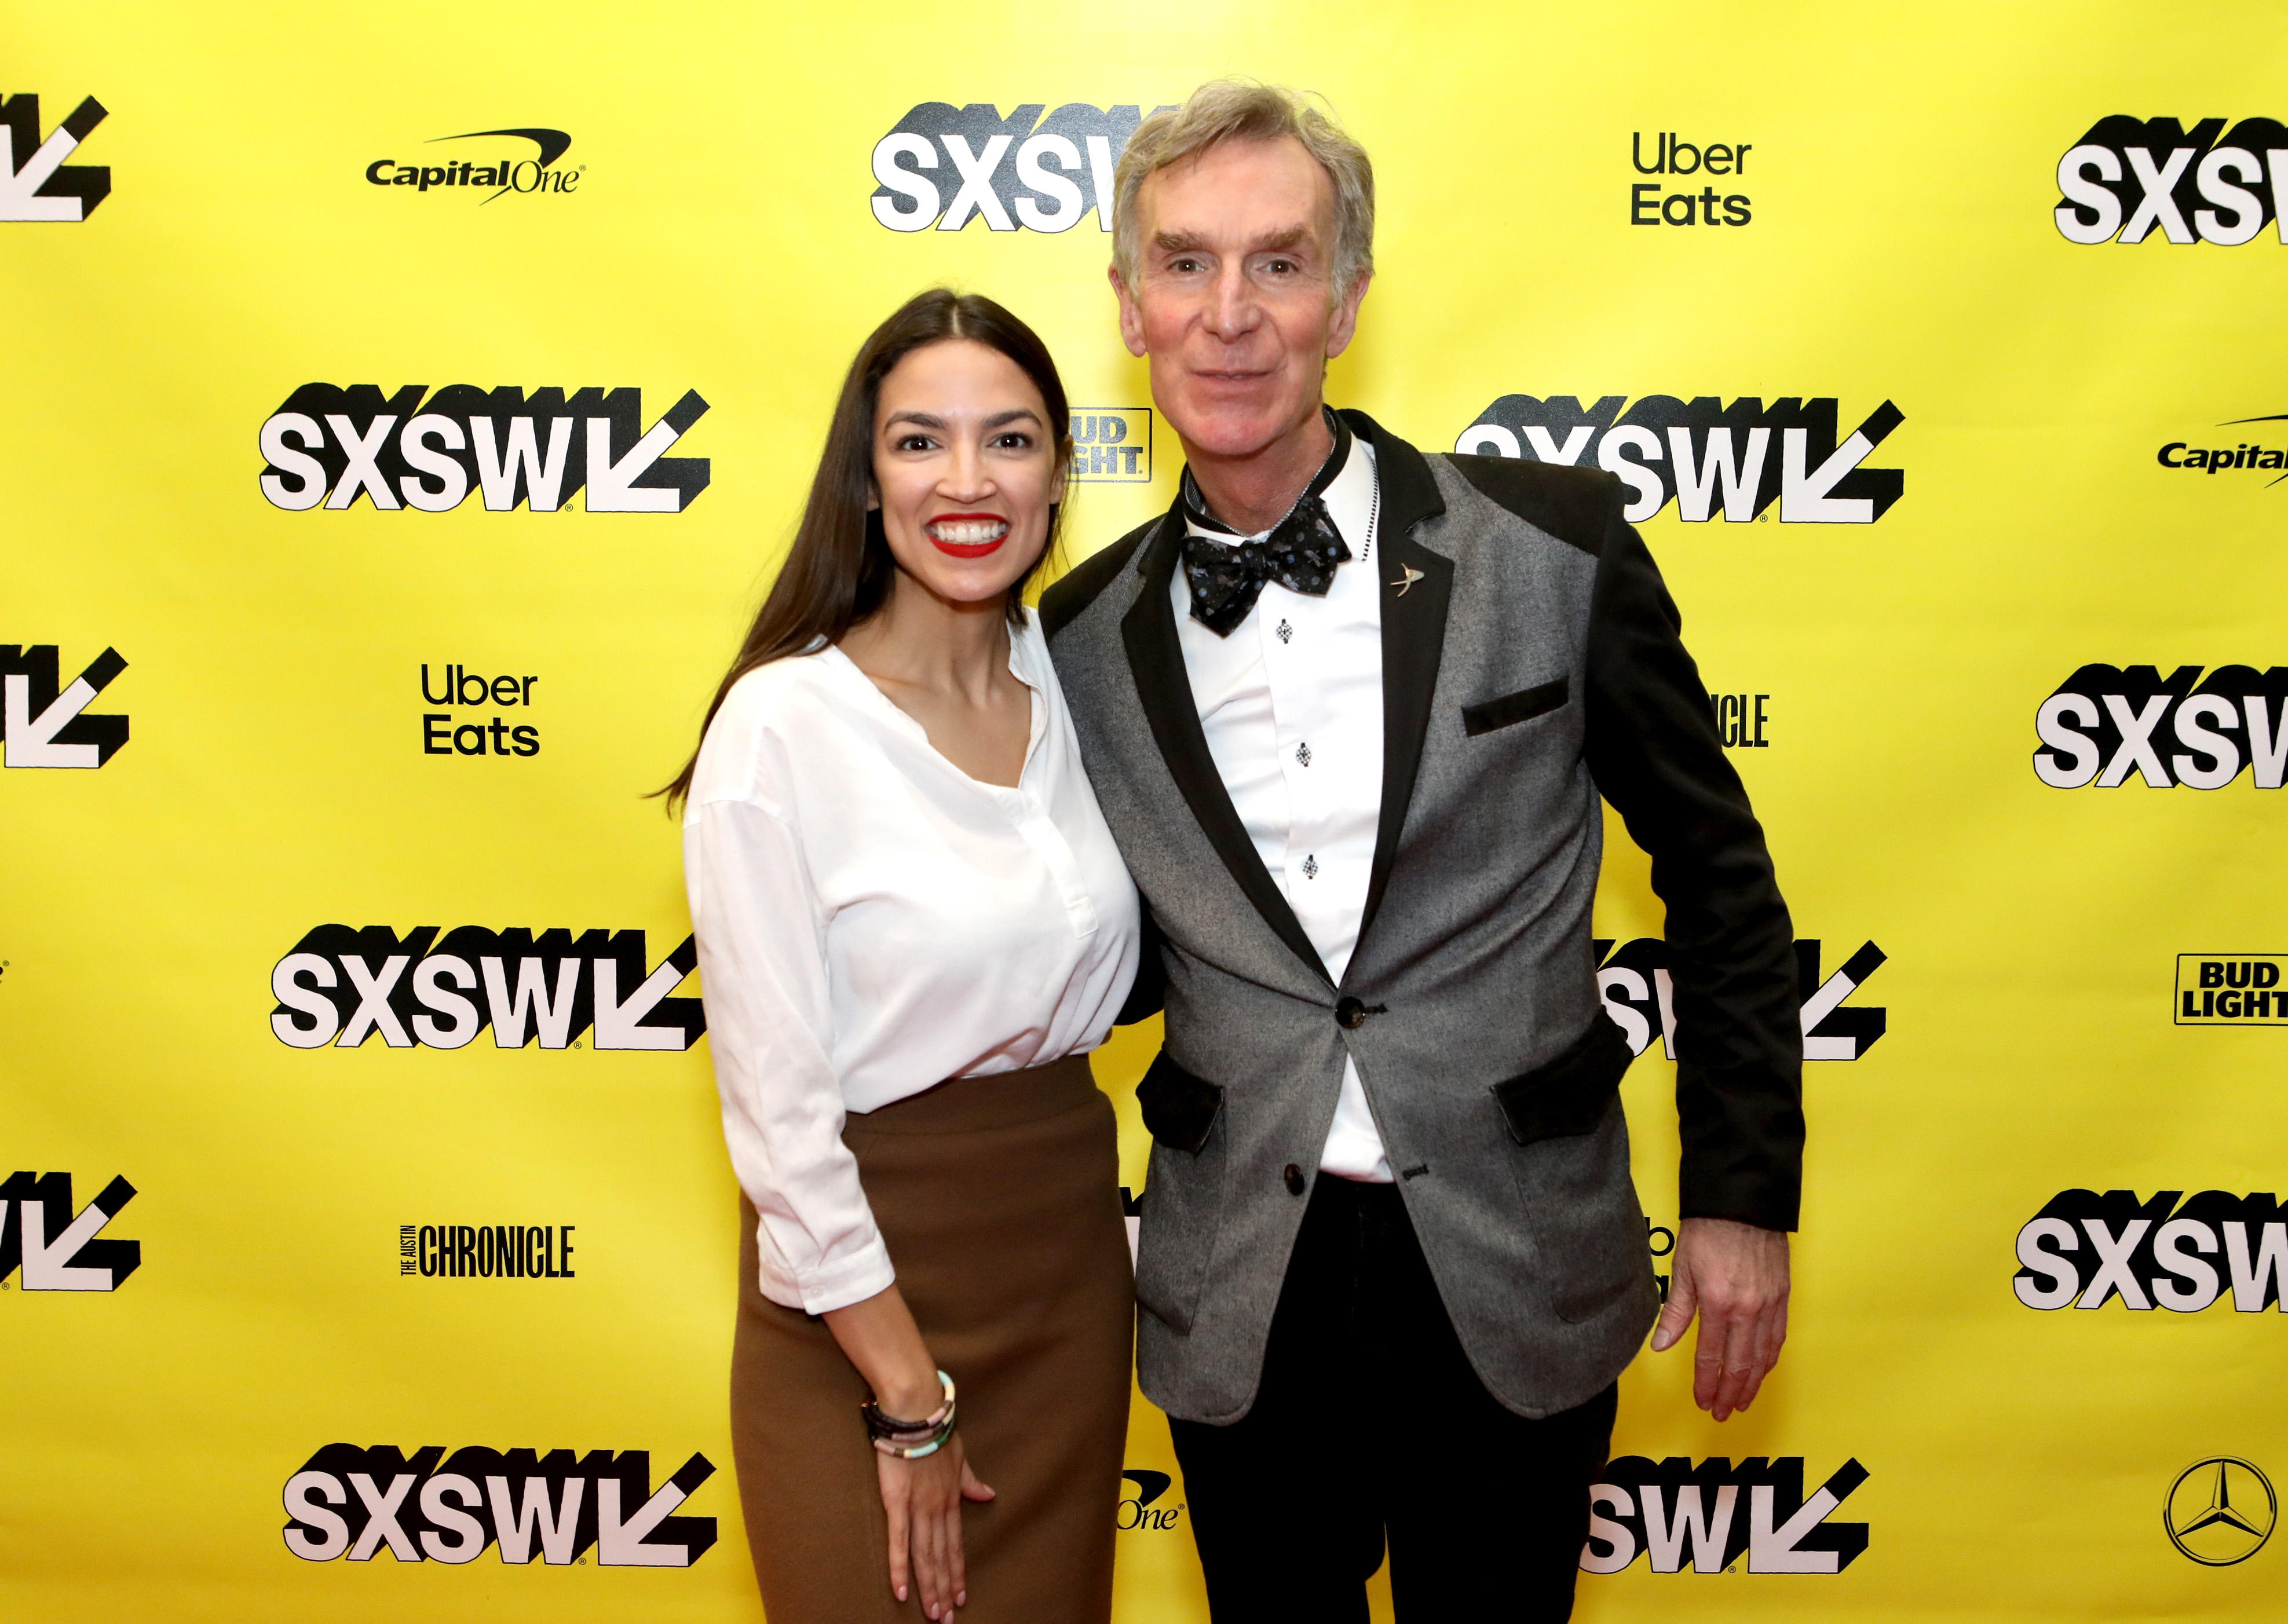 <p>Bill Nye popped up during Alexandria Ocasio-Cortez's session at SXSW.&nbsp;</p>